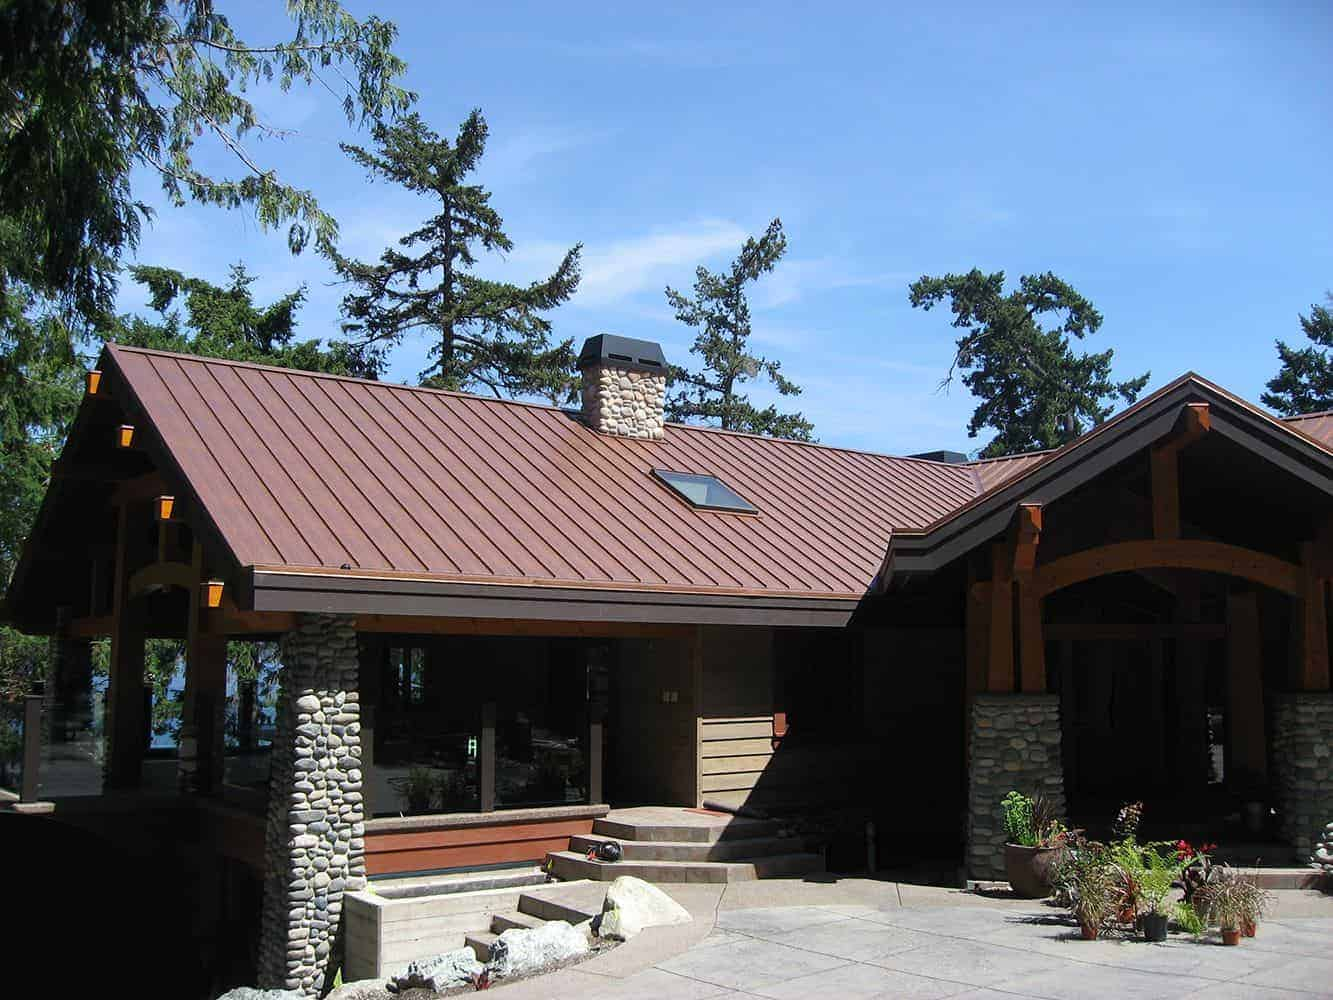 Interlock Standing Seam Roof Aged Copper Vancouver Island